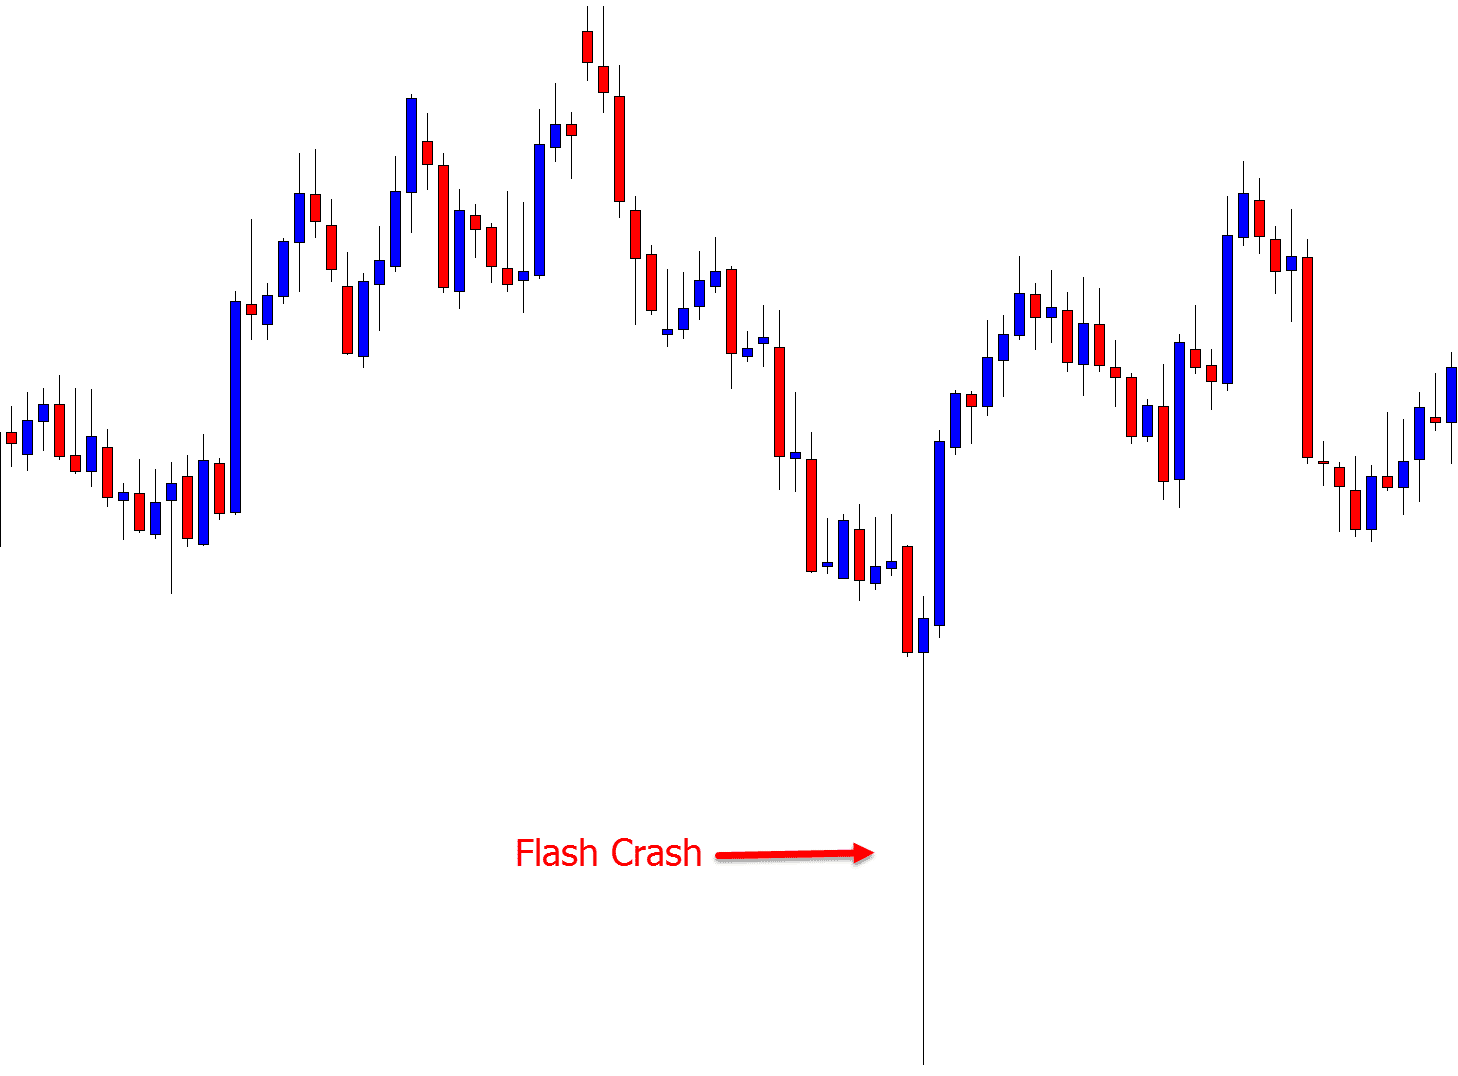 flash crash AUD